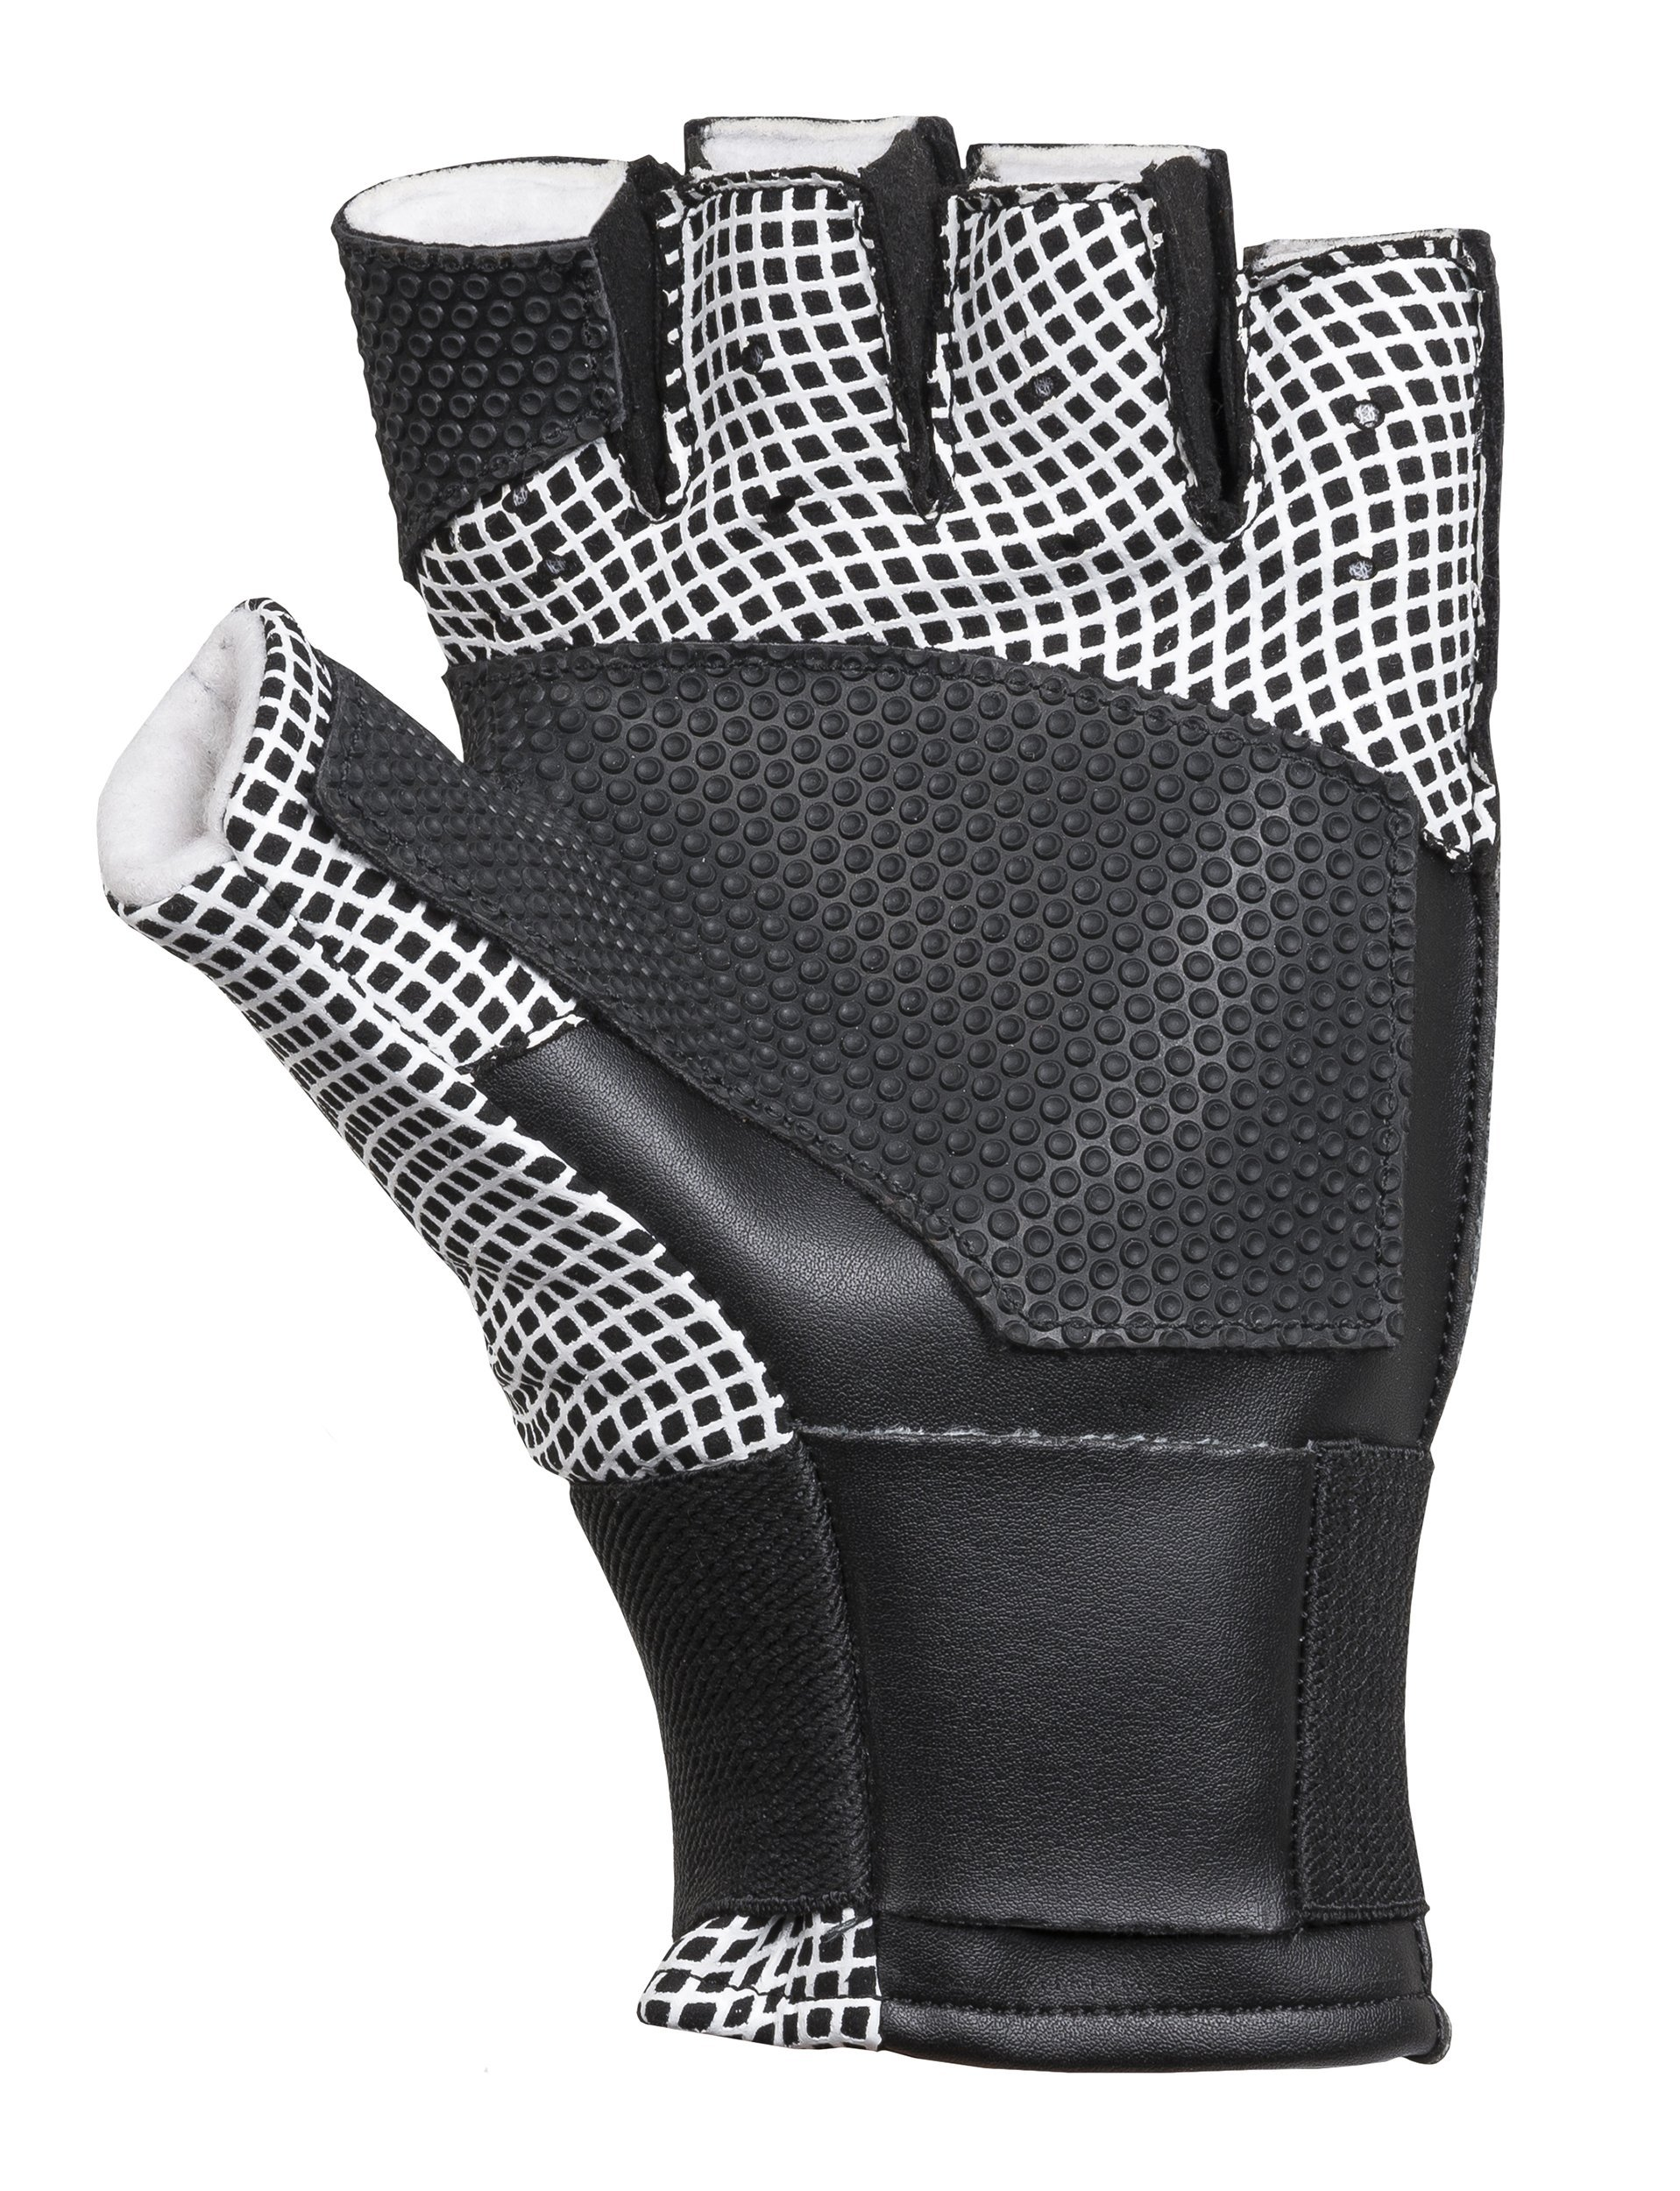 ahg shooting glove Black Grip